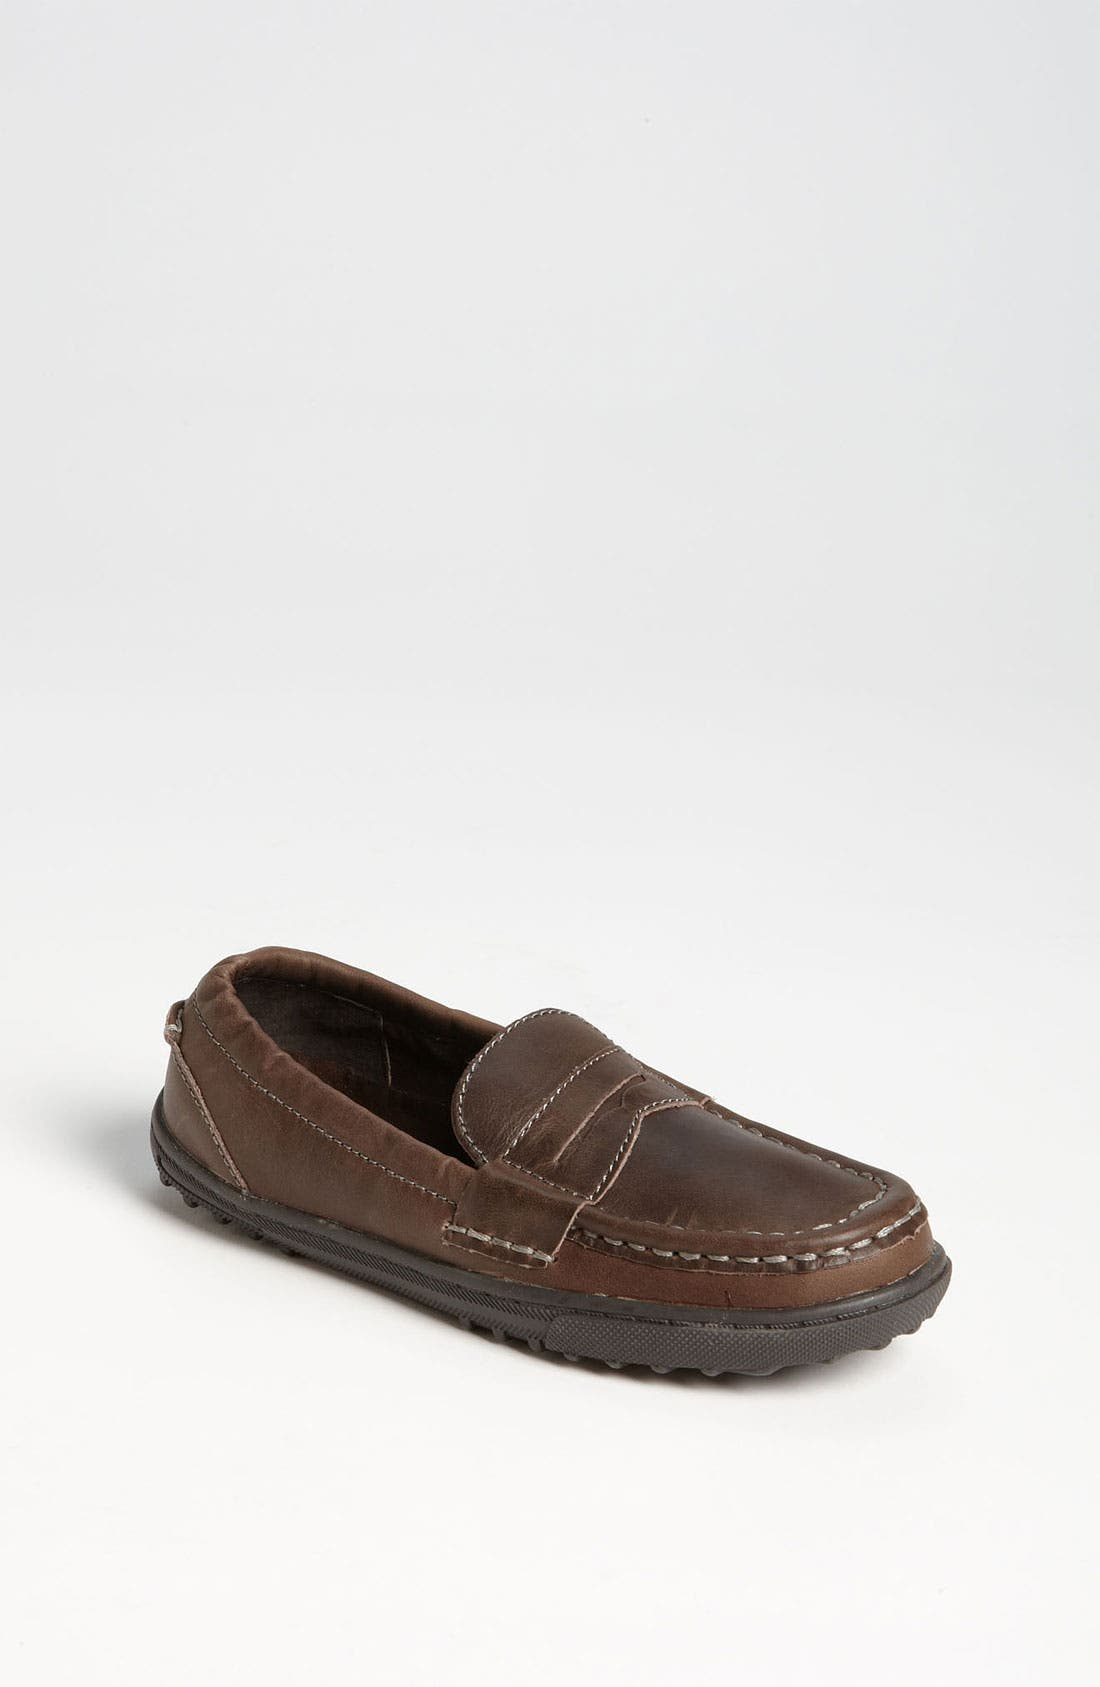 Alternate Image 1 Selected - Cole Haan 'Air Sail' Loafer (Toddler, Little Kid & Big Kid)